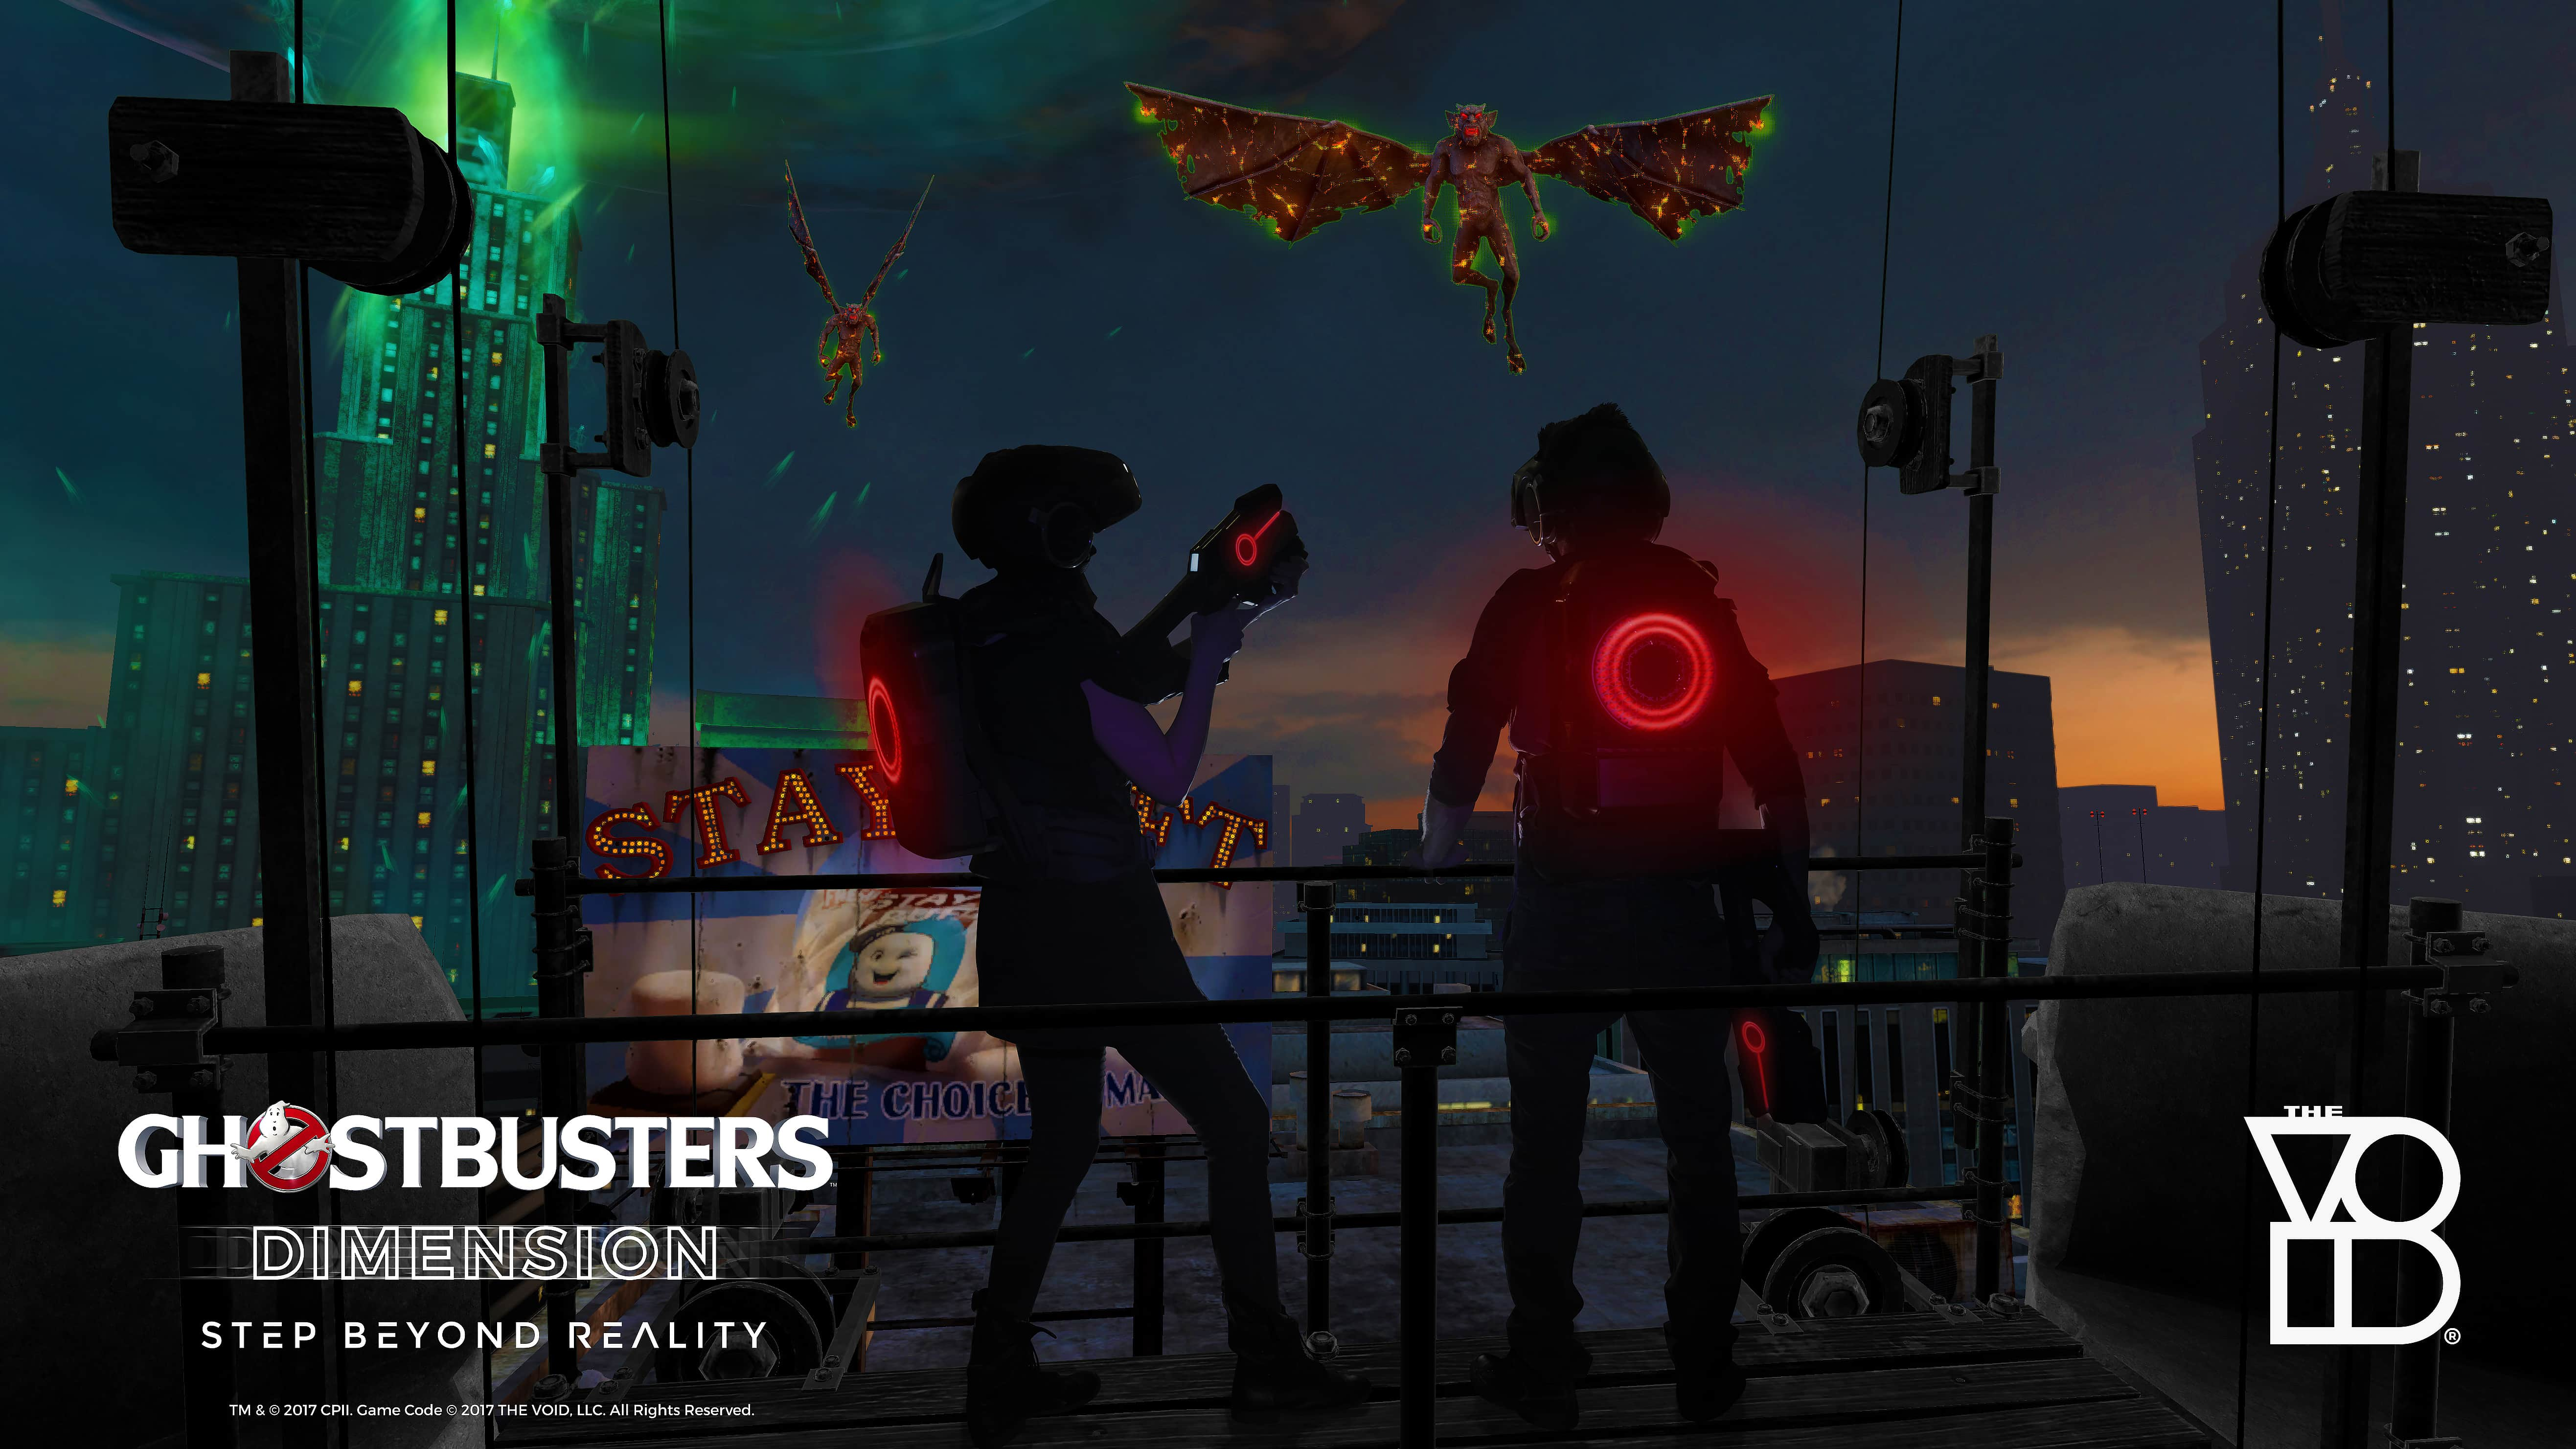 Ghostbusters Dimension VOID Toronto Shooting Gargoyles | Geek Life: Augmenting Reality